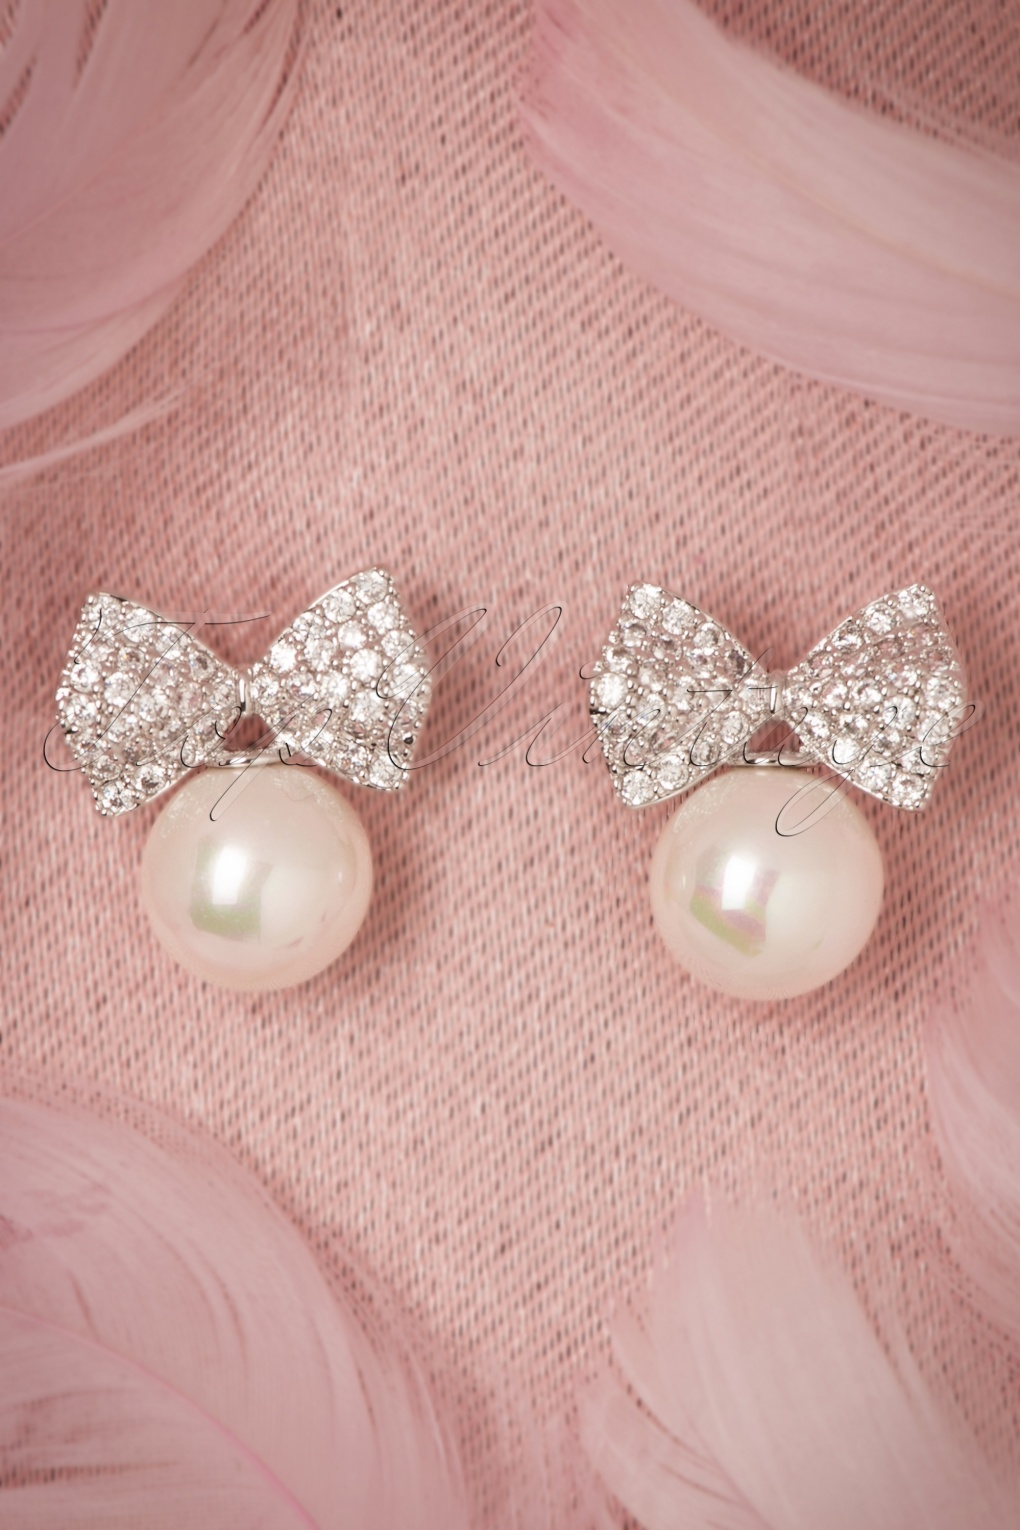 New 1940s Costume Jewelry: Necklaces, Earrings, Pins 40s Pearl and Bow Earrings in Silver £18.41 AT vintagedancer.com